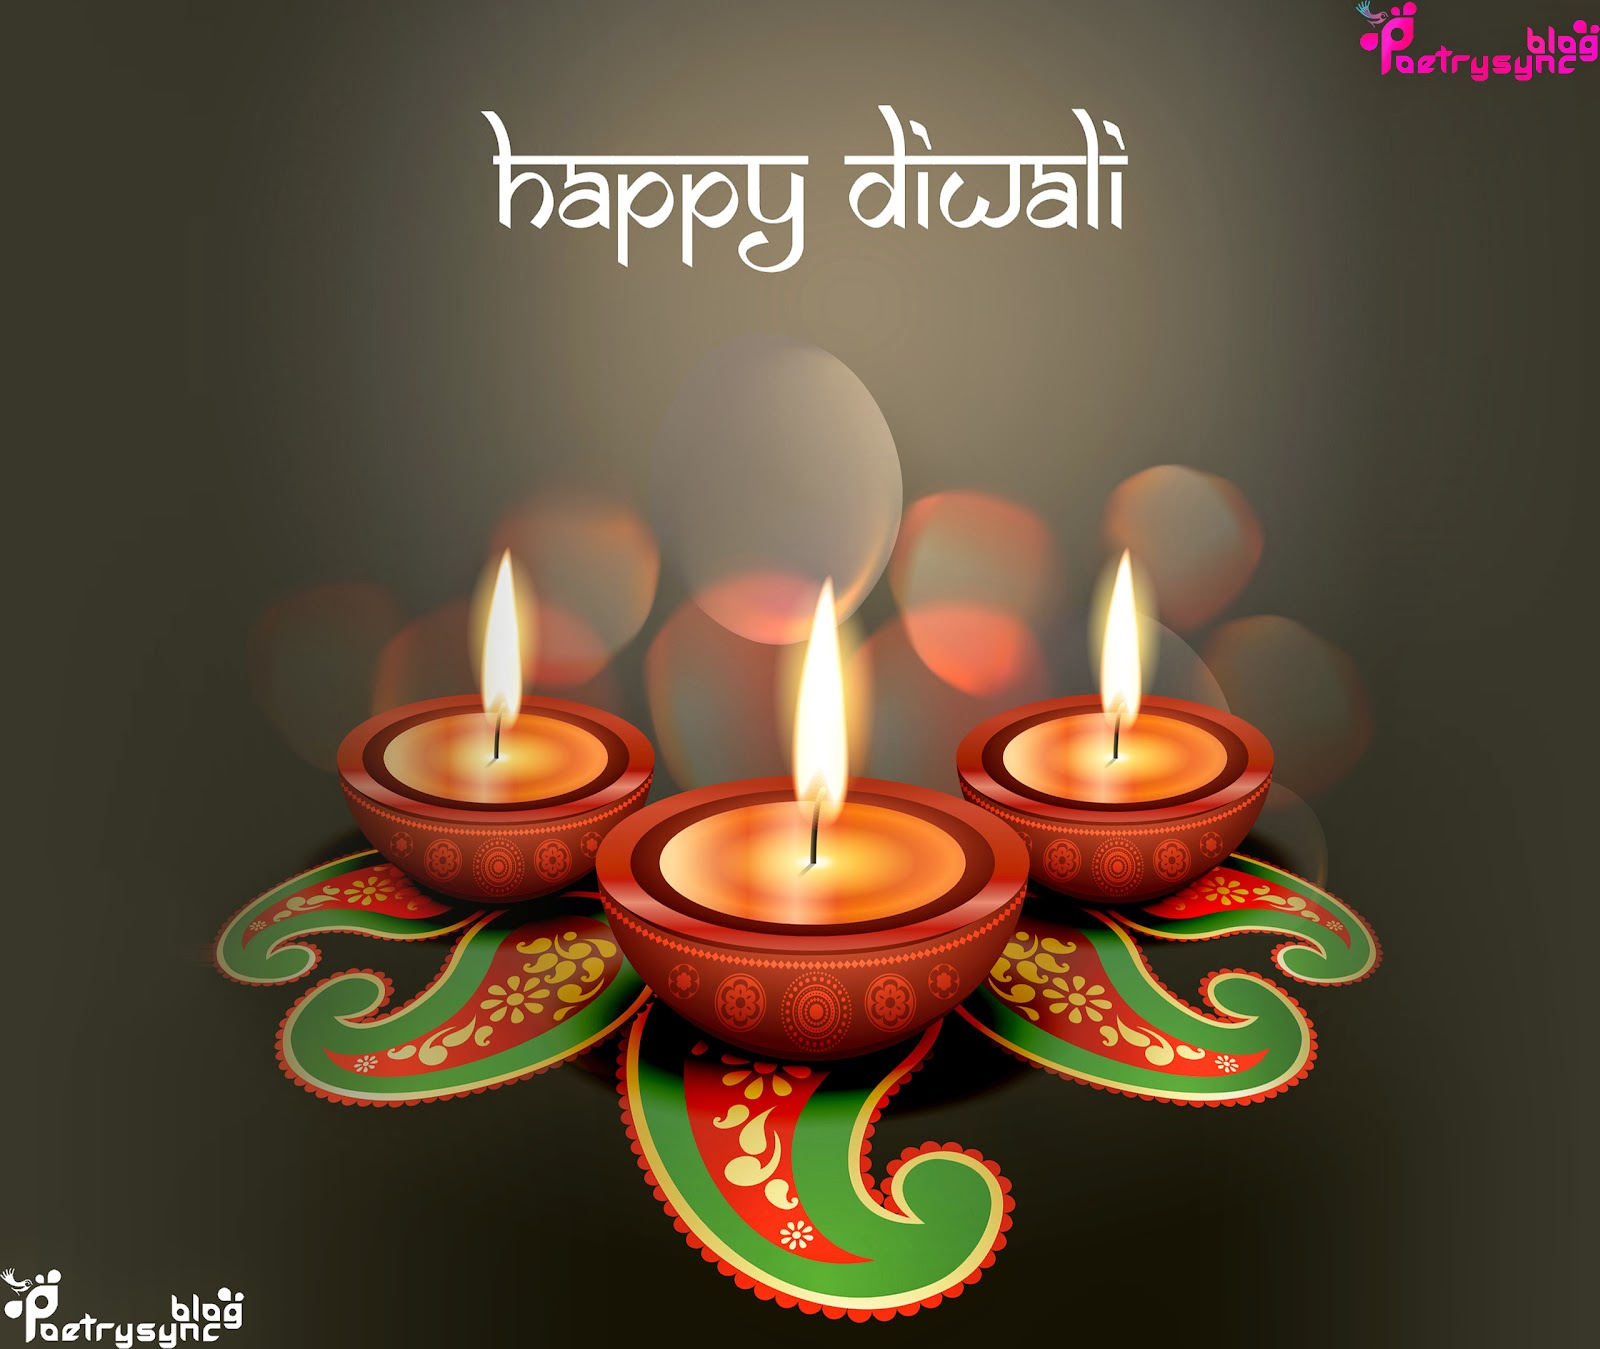 Fantastic Wallpaper Love Diwali - happy-diwali-Desktop-wallpaper-Dia-image-By-Poetrysync1blog  Snapshot_94241.jpg